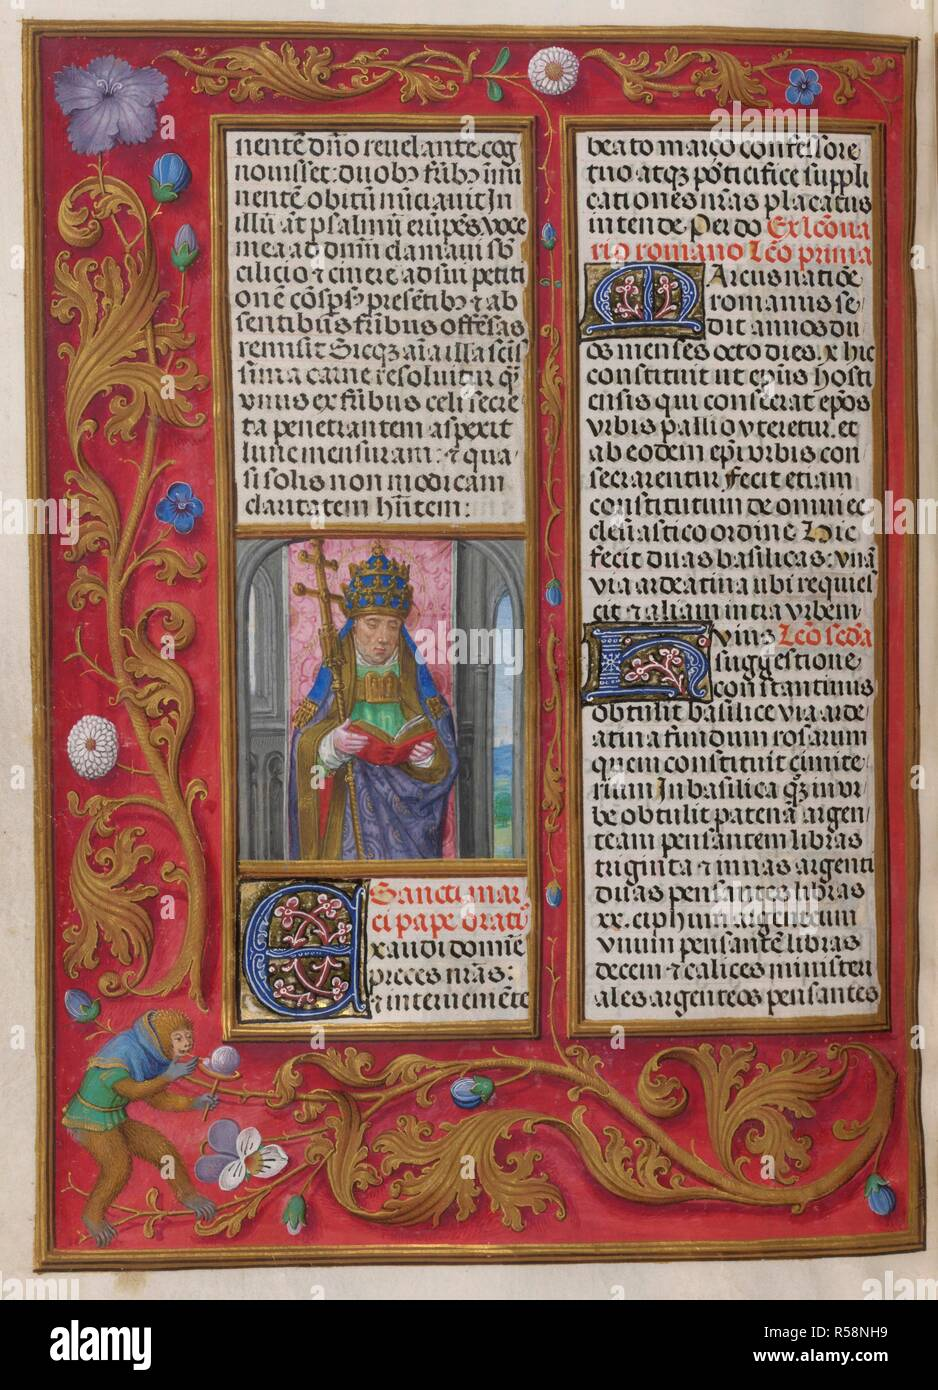 Sanctorale. St Pope Marcus. Isabella Breviary. Breviary, Use of the Dominicans ('The Breviary of Queen Isabella of Castile'). c1497. Source: Add. 18851 f.470v. Author: Master of James IV of Scotland. - Stock Image